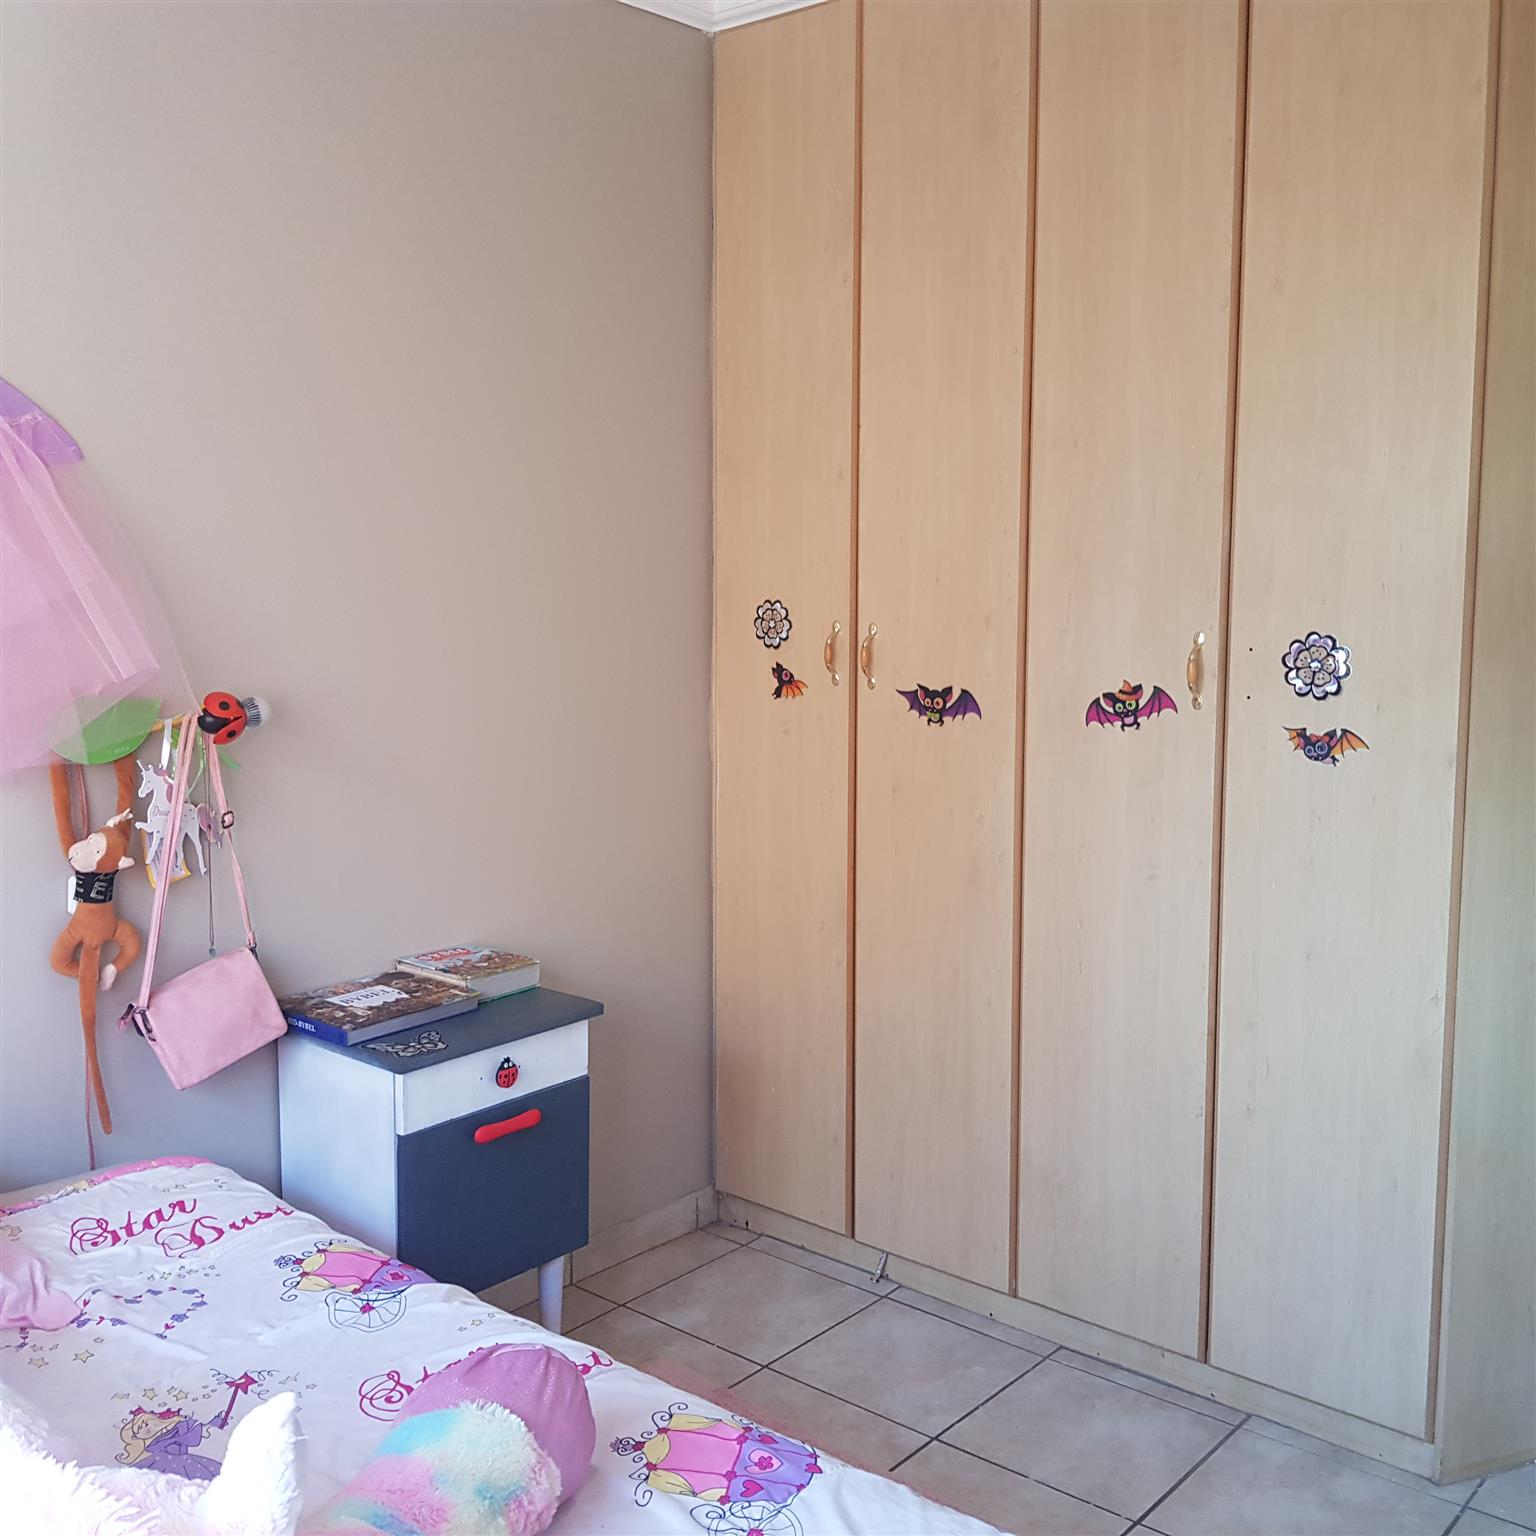 Beautifull Townhouse - Langenhovenpark - Bloemfontein FOR RENT - R6600pm.